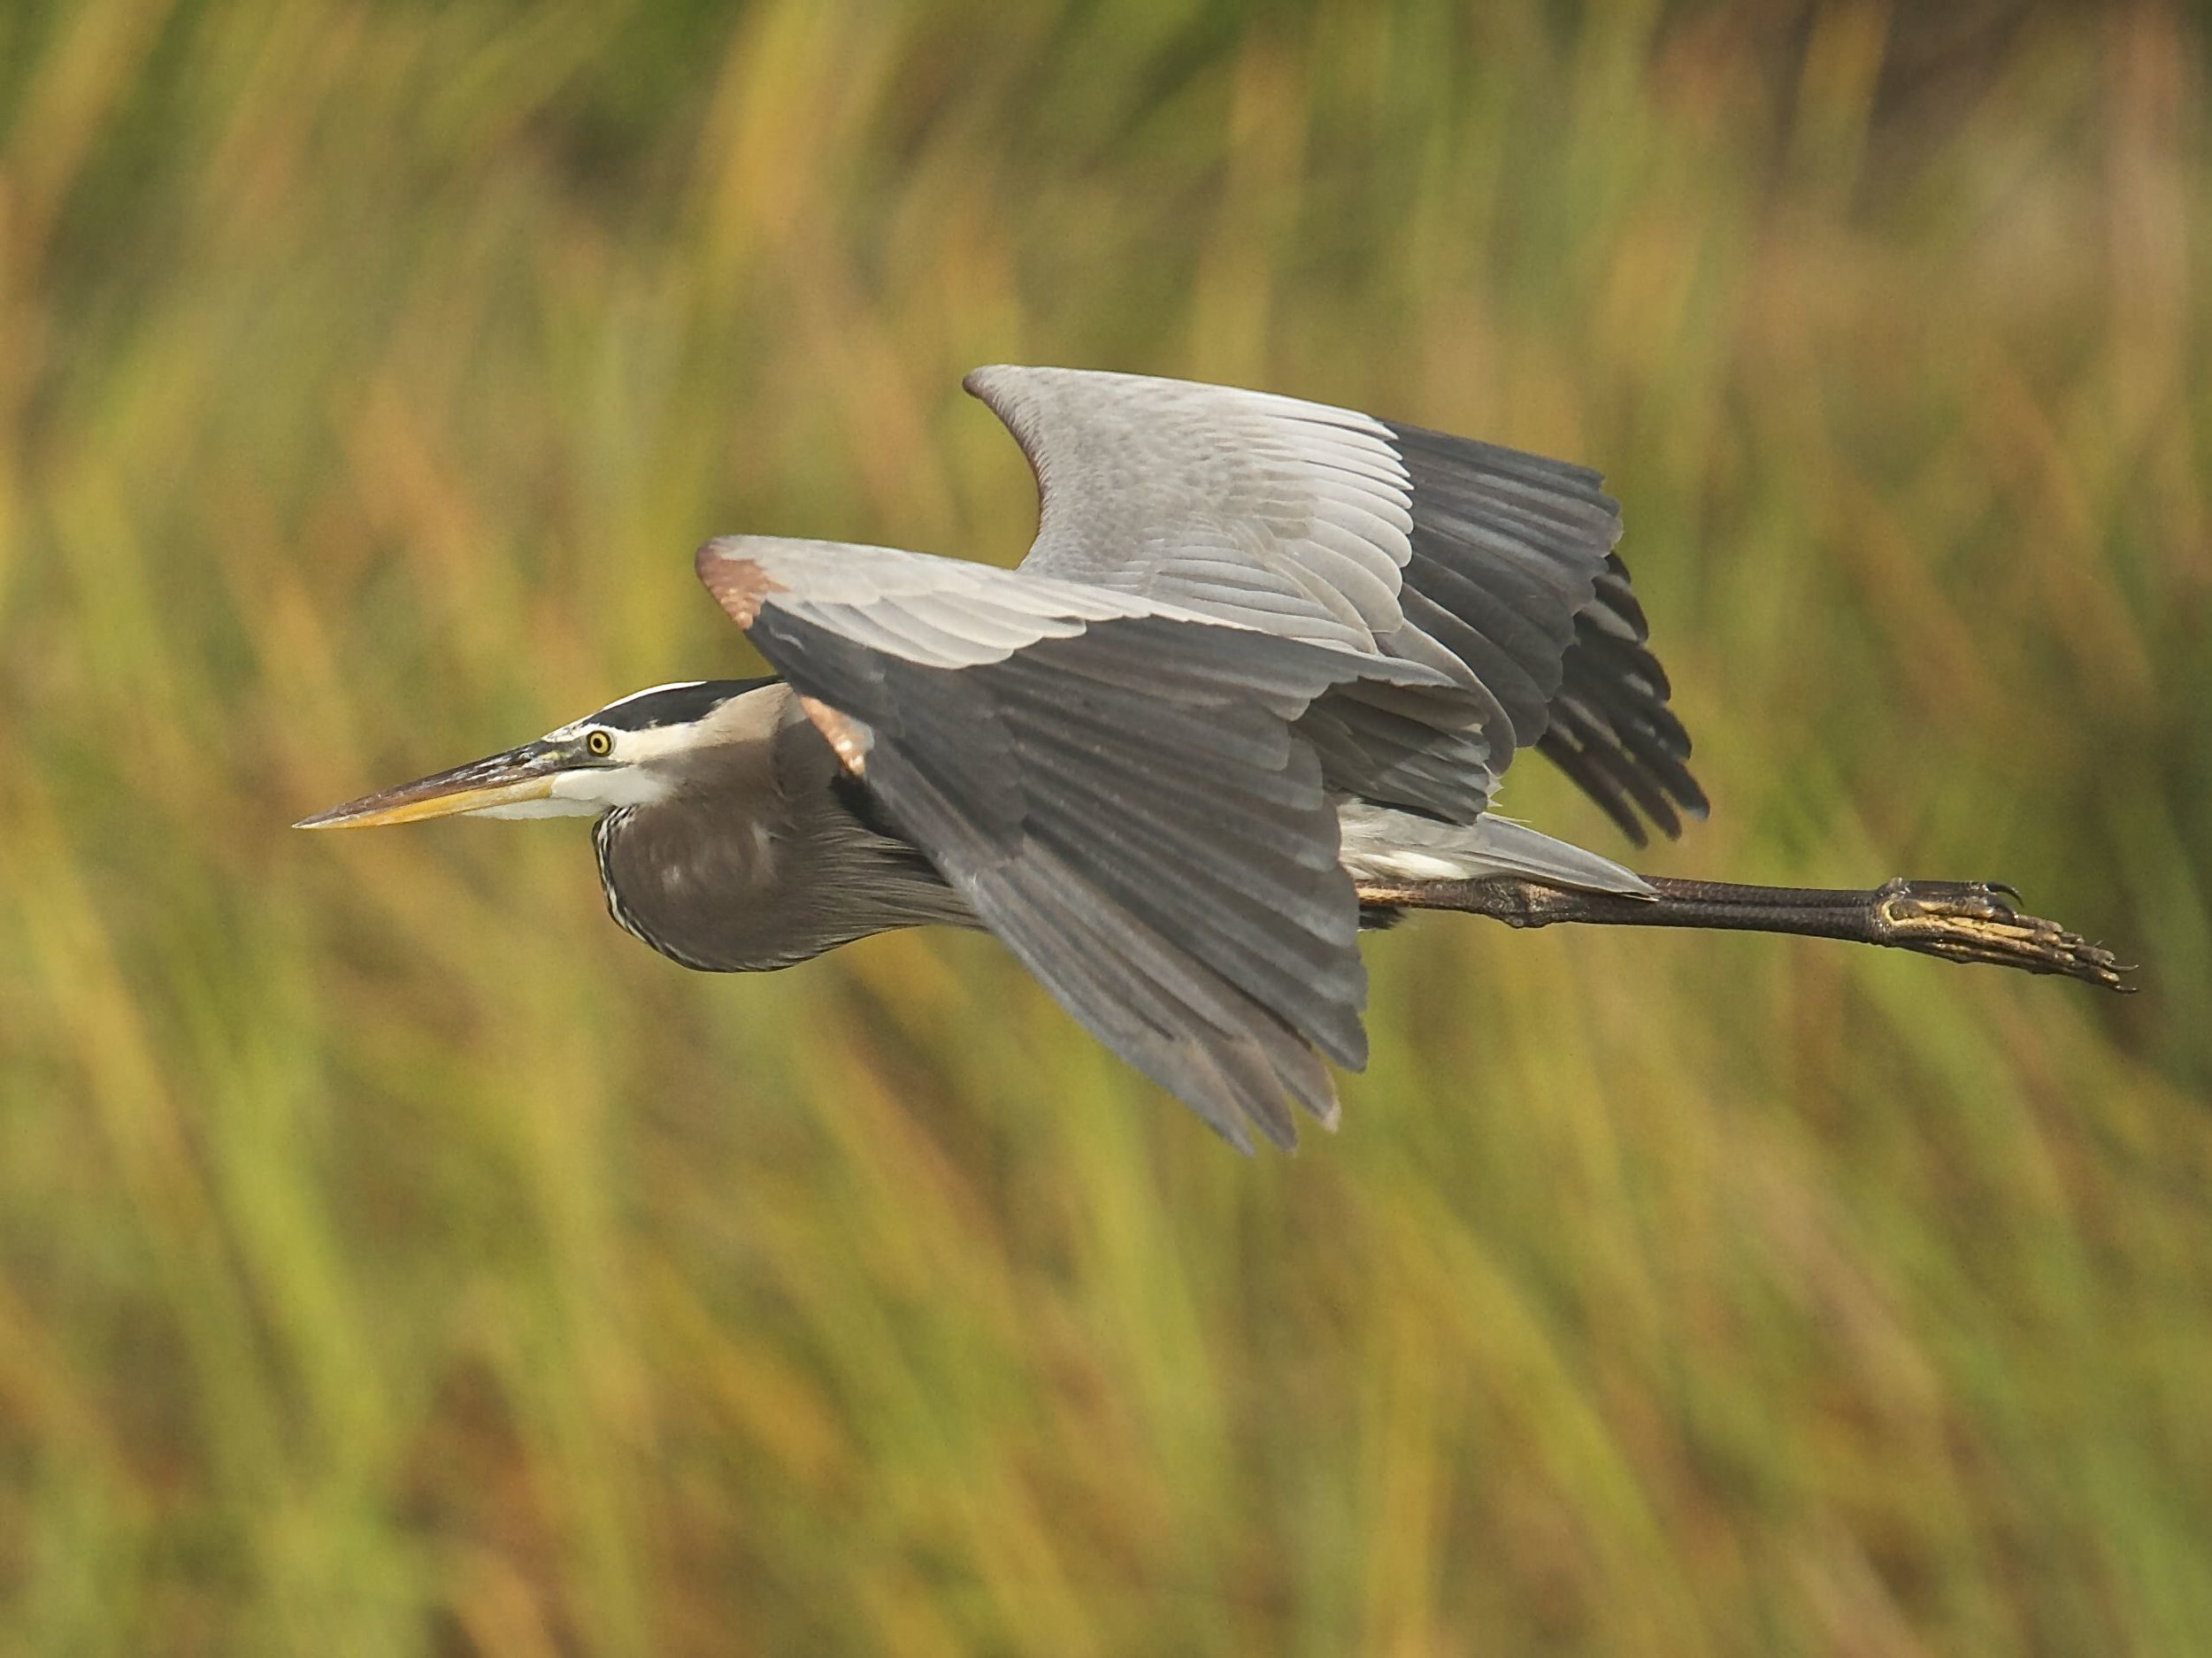 Old Man River, the Great Blue Heron in a rare fly by opportunity